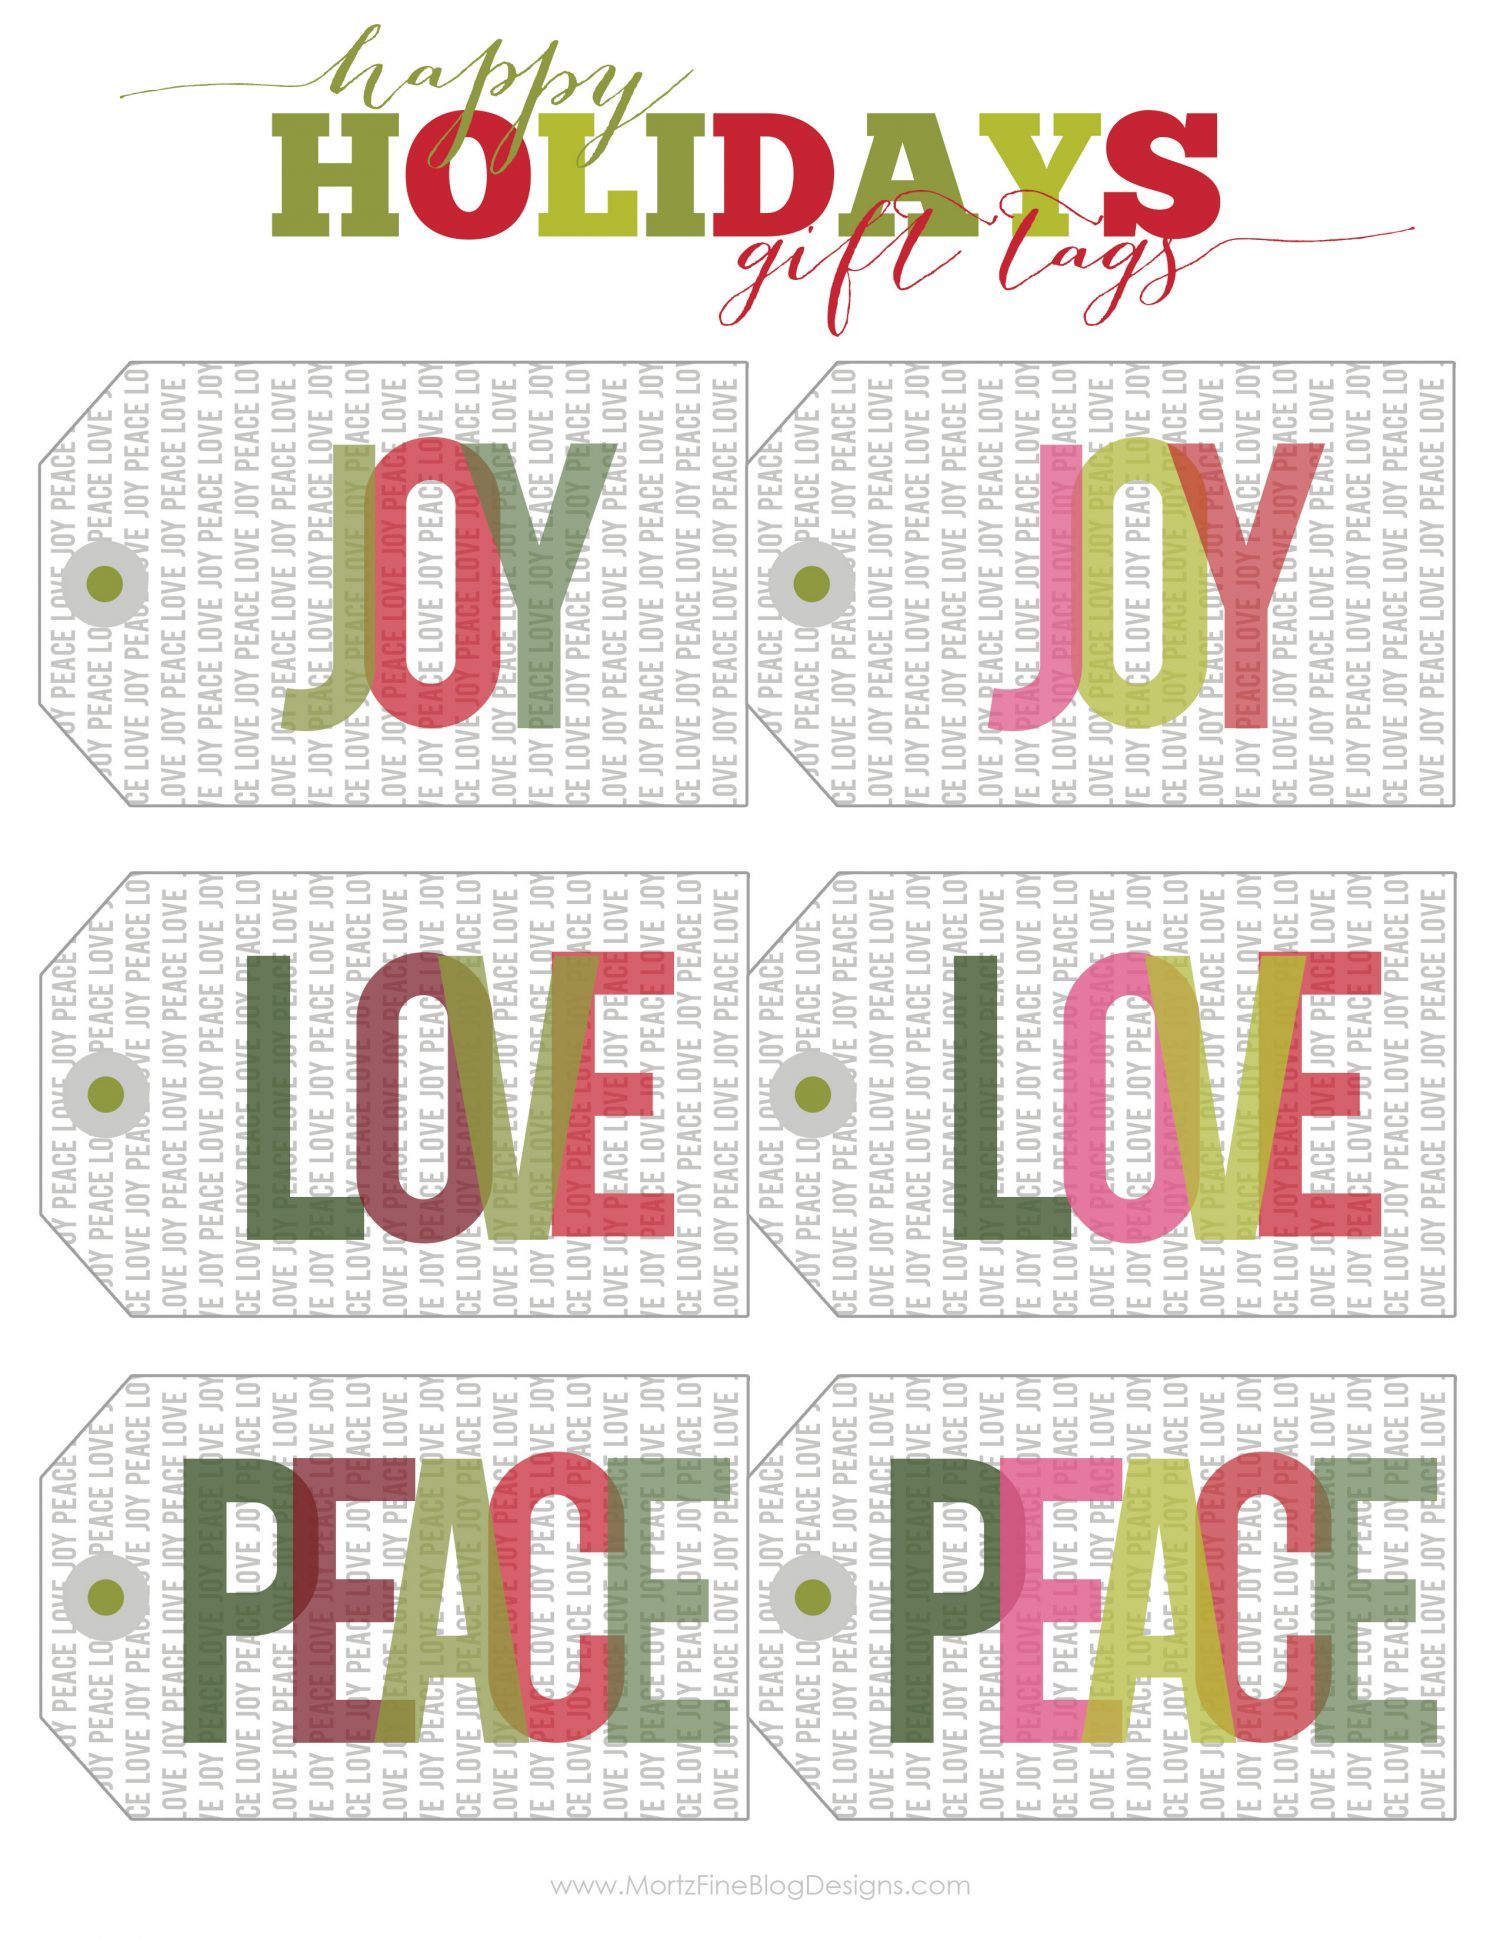 This is an image of Gorgeous Printable Christmas Gift Tag